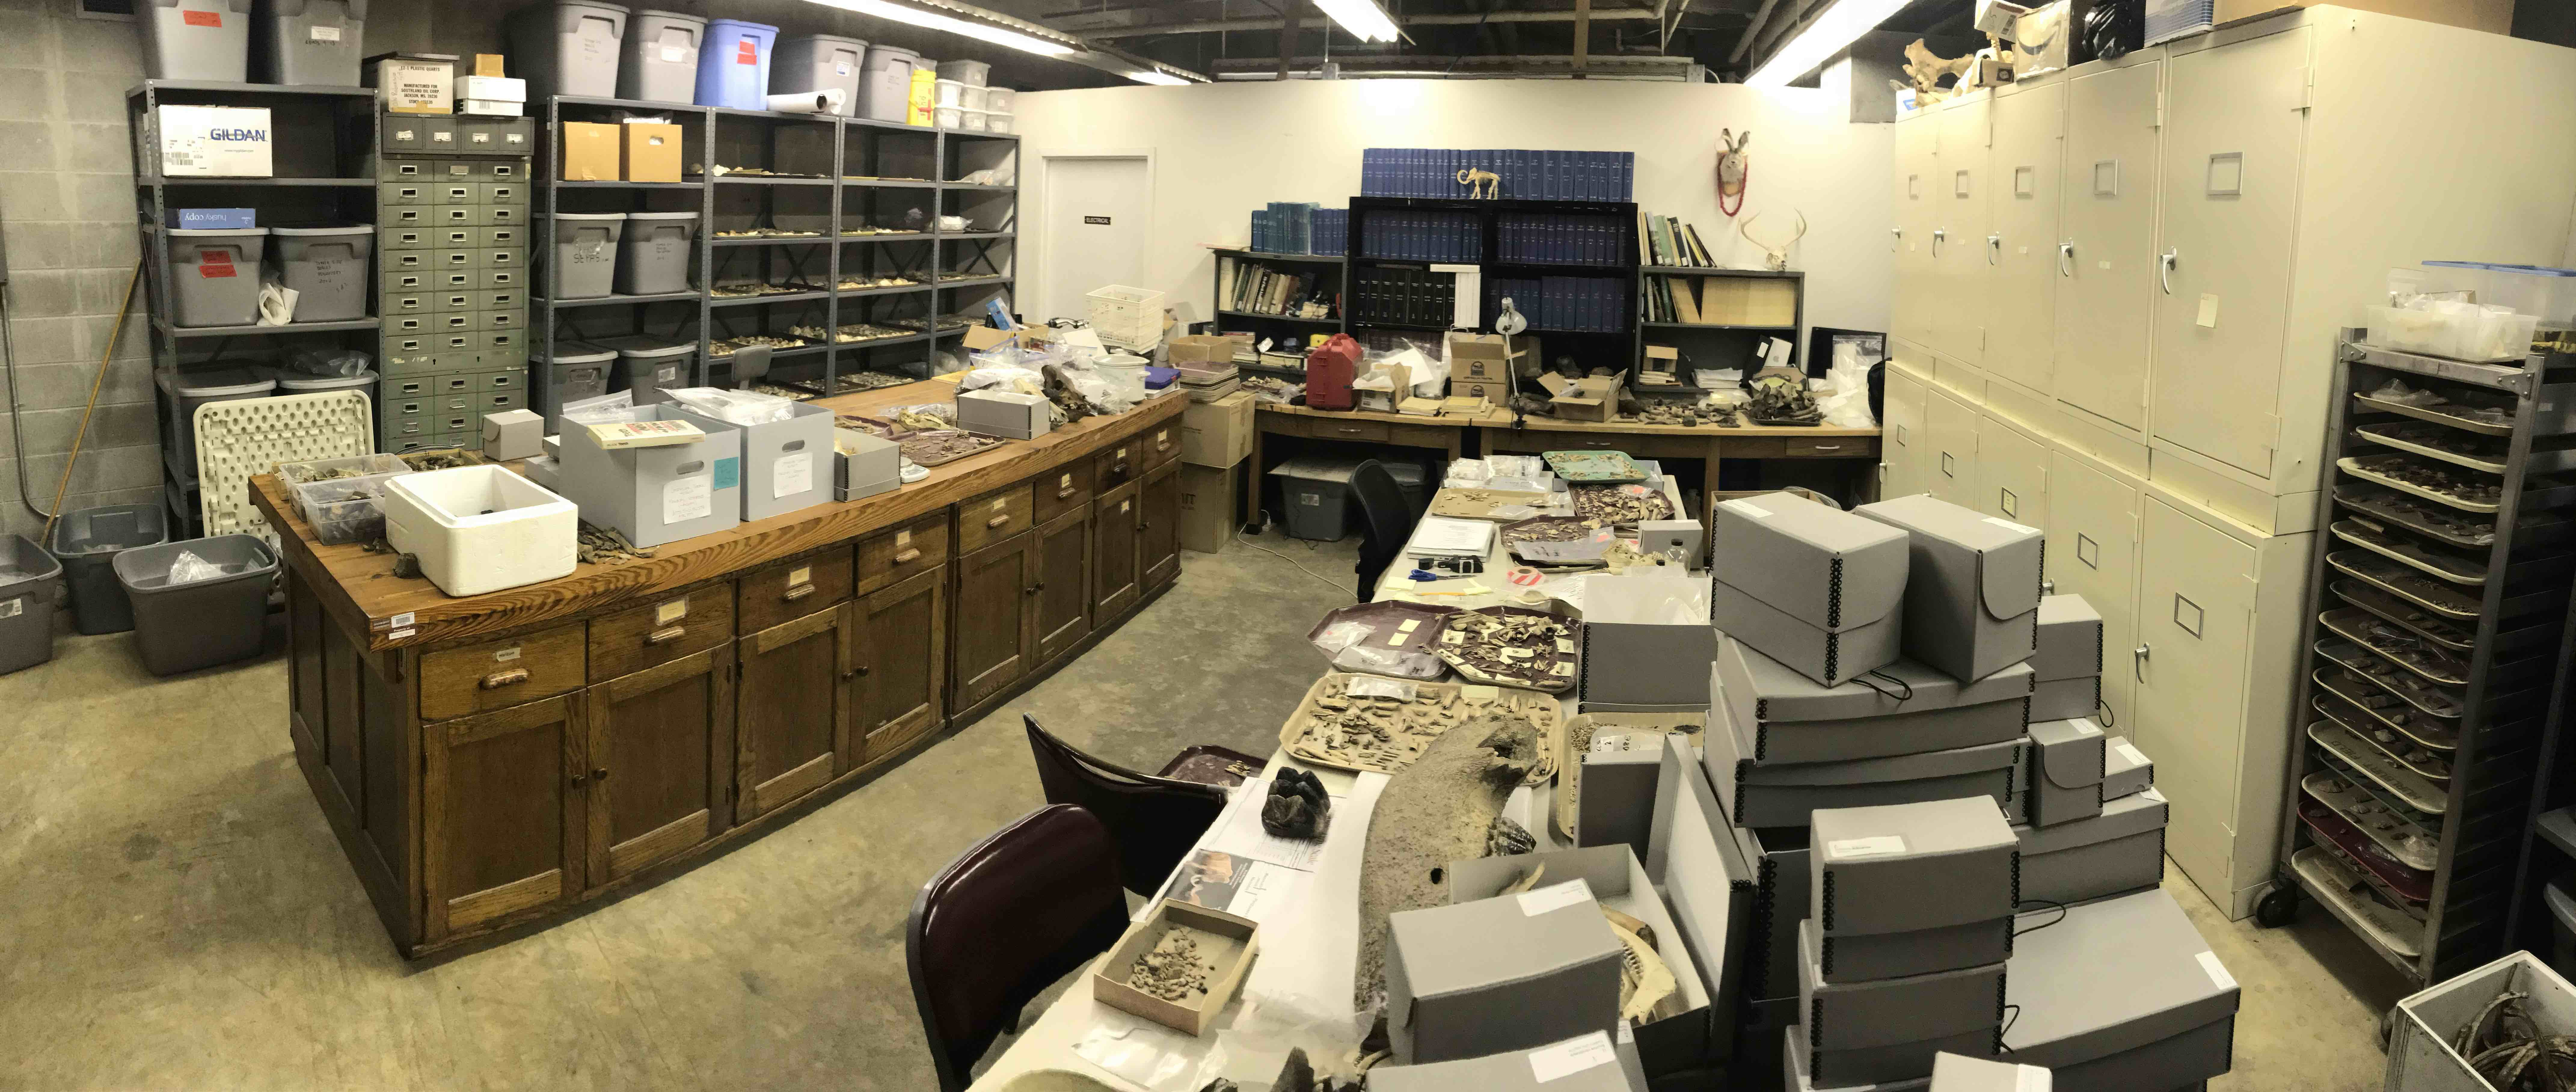 Zooarchaeology Lab 1